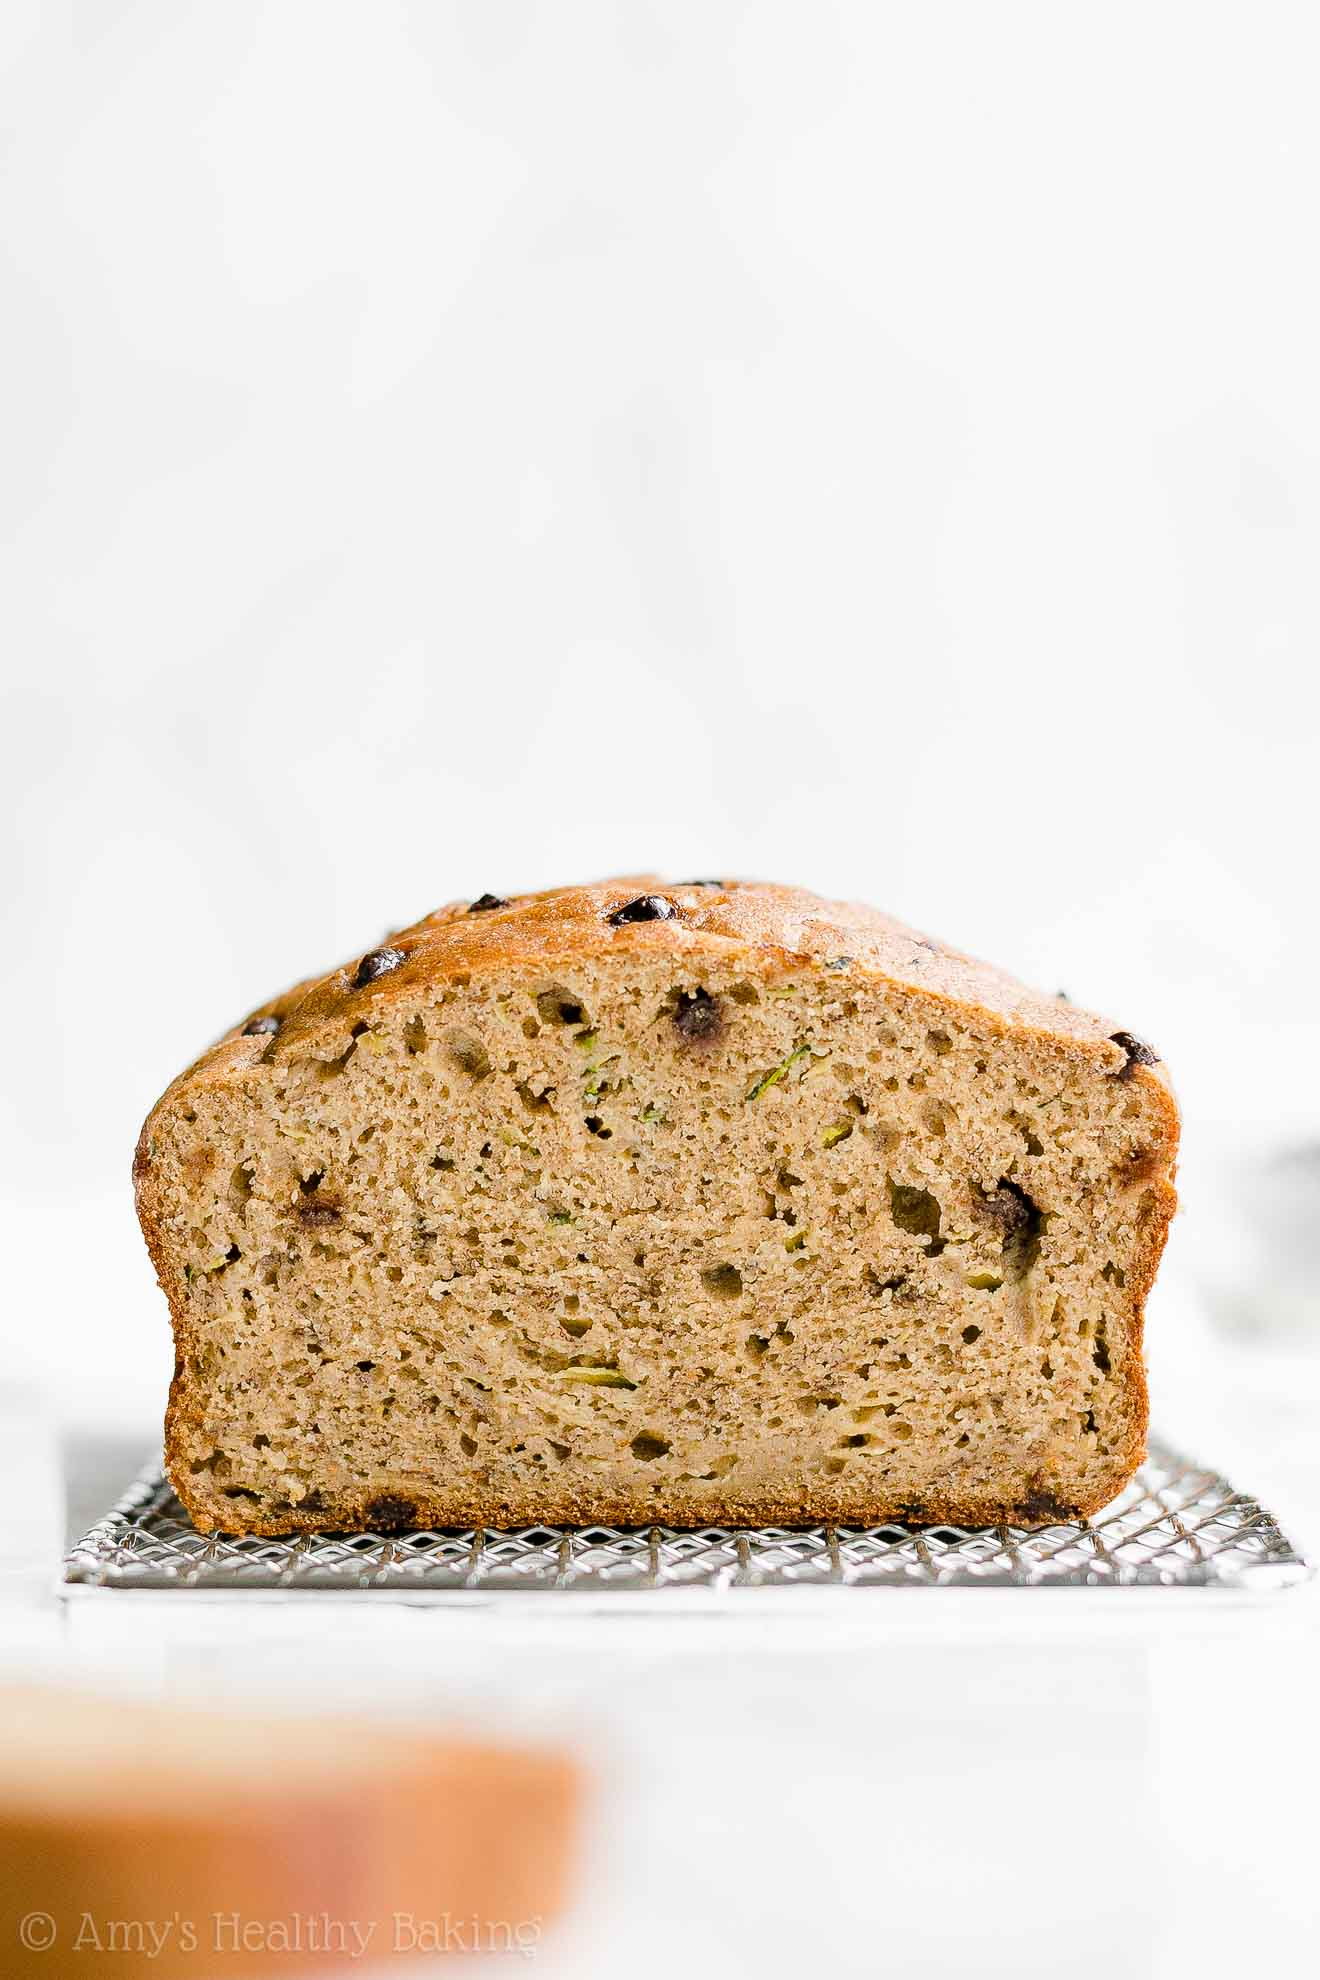 Easy Healthy Clean Eating Greek Yogurt Chocolate Chip Zucchini Banana Bread